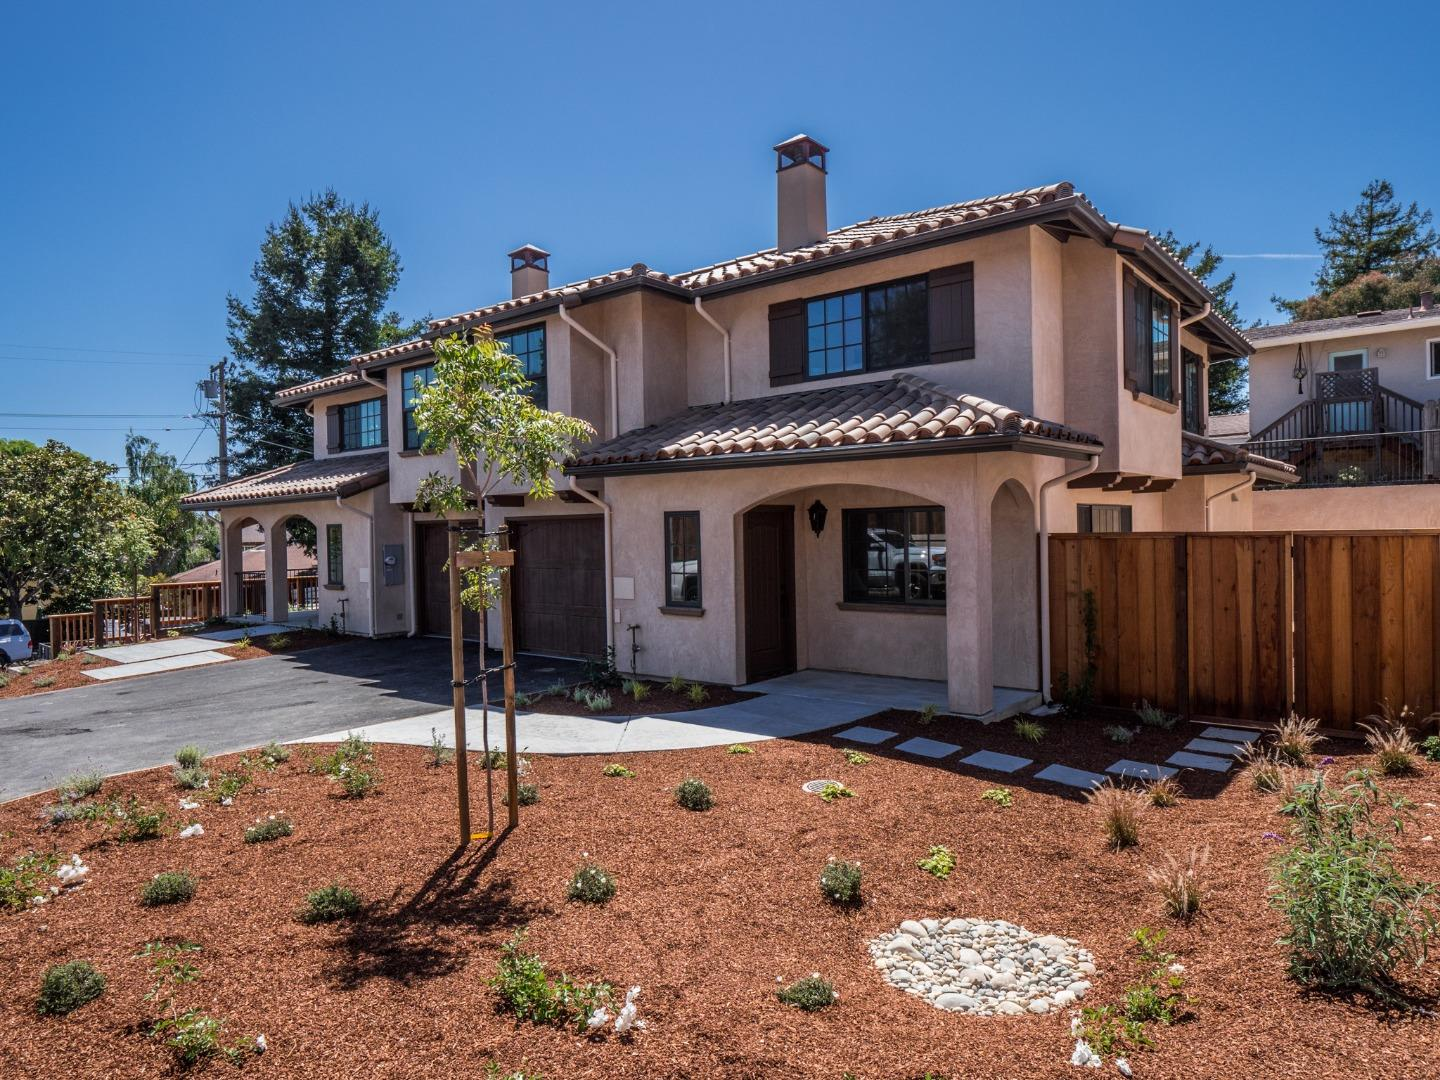 Detail Gallery Image 1 of 1 For 504 A Pine St, Capitola, CA, 95010 - 3 Beds | 2/1 Baths